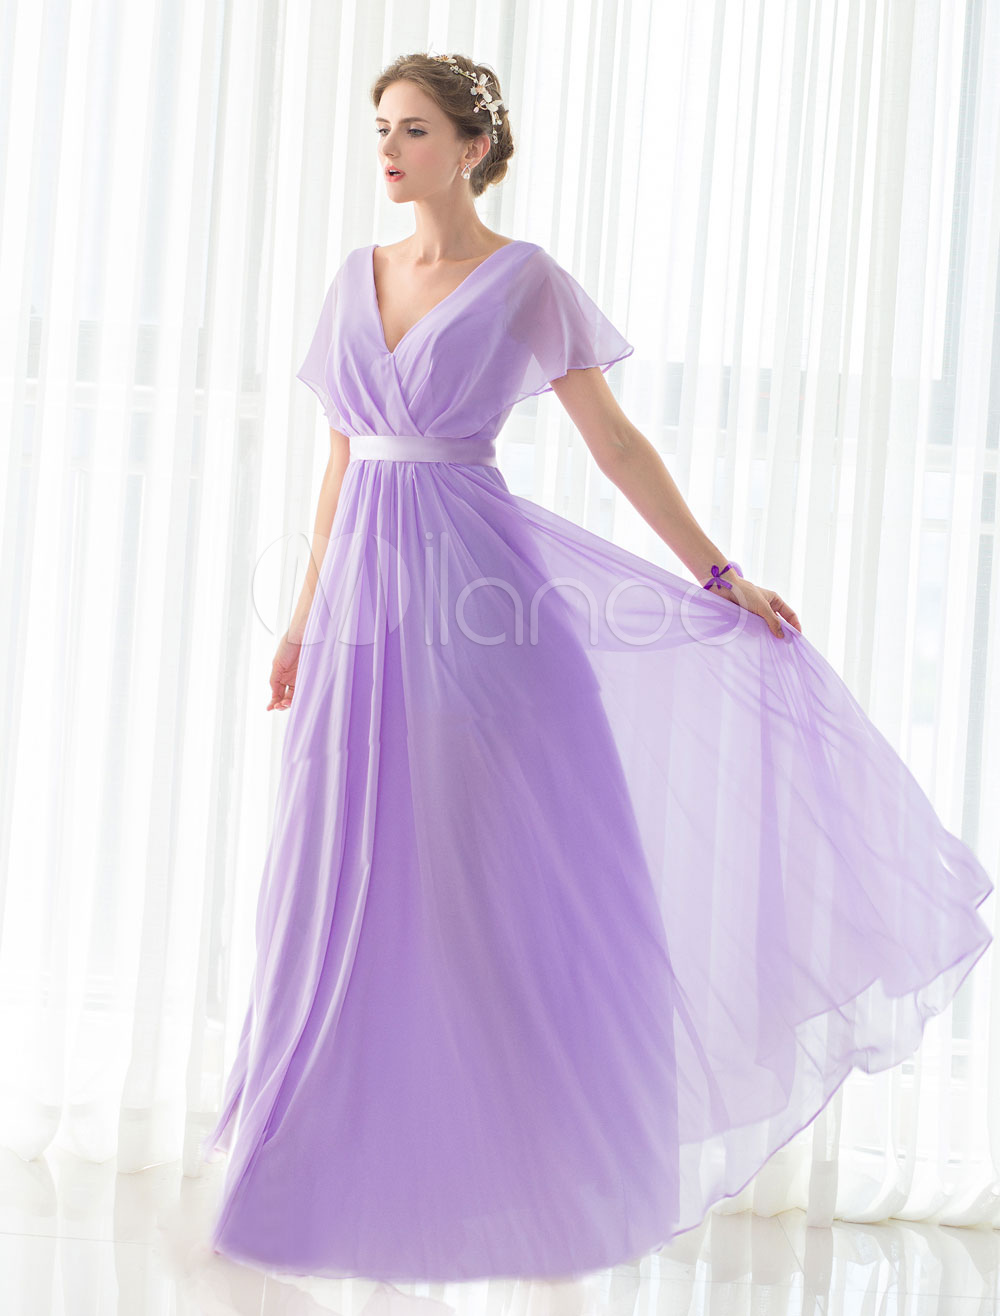 Bridesmaid Dress Lilac Chiffon Maxi V-neck Short Sleeves Satin Sash Floor-length Lace-up Wedding Party Dress